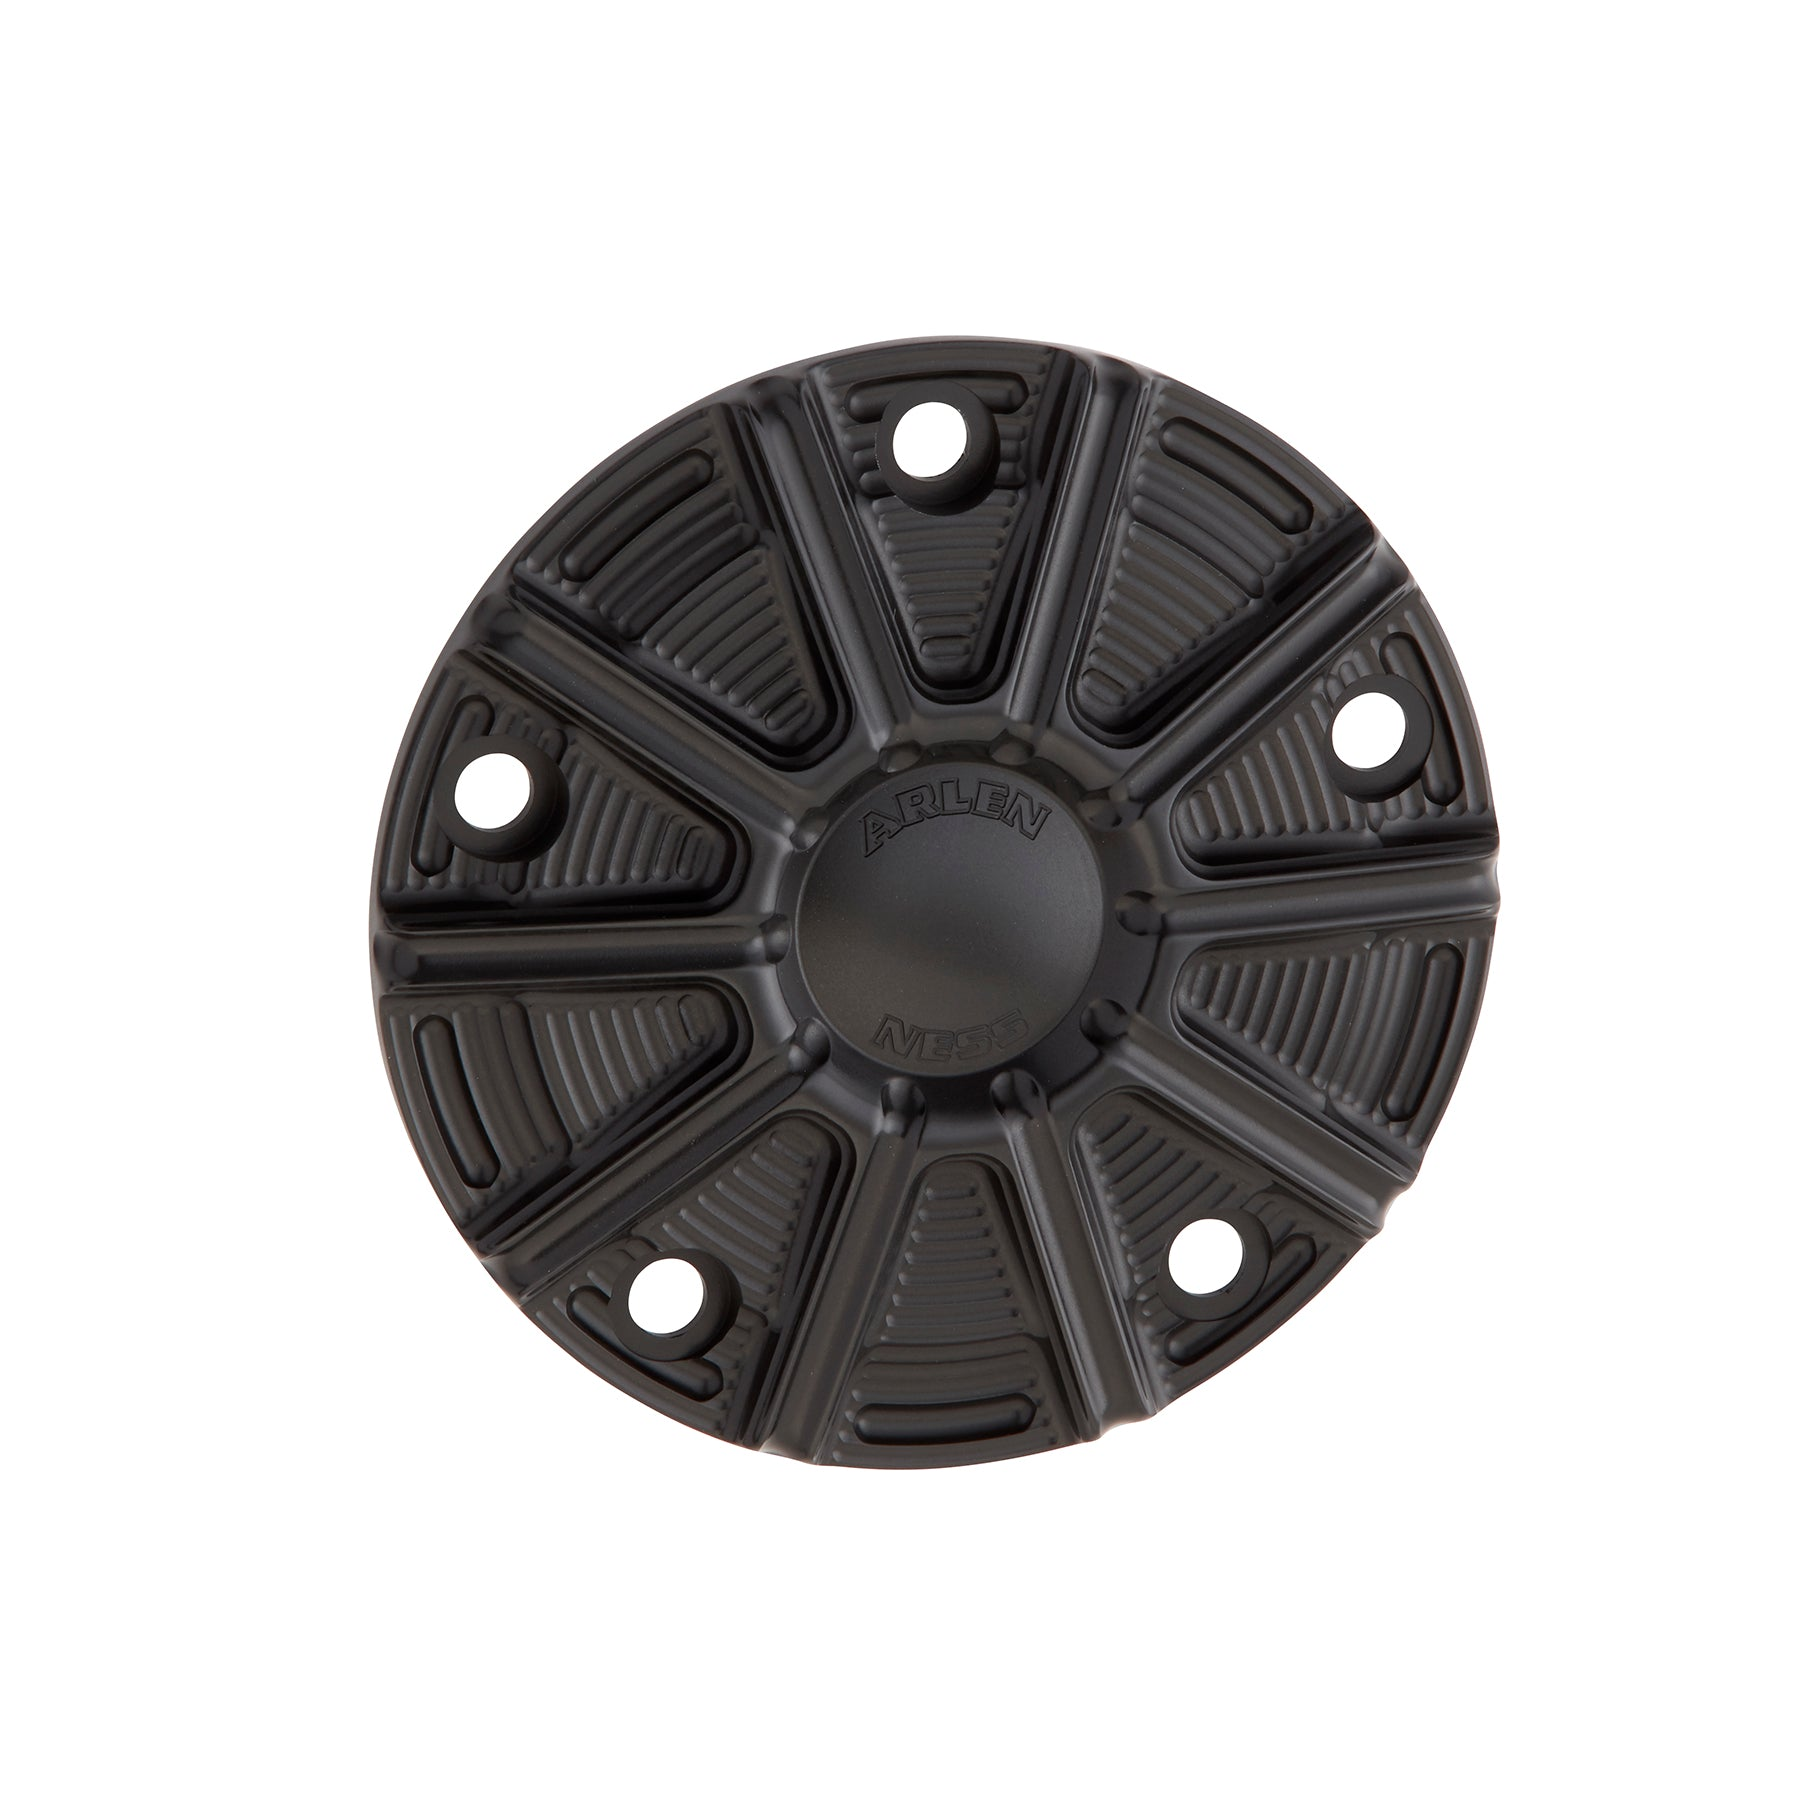 10-Gauge Point Cover, All Black